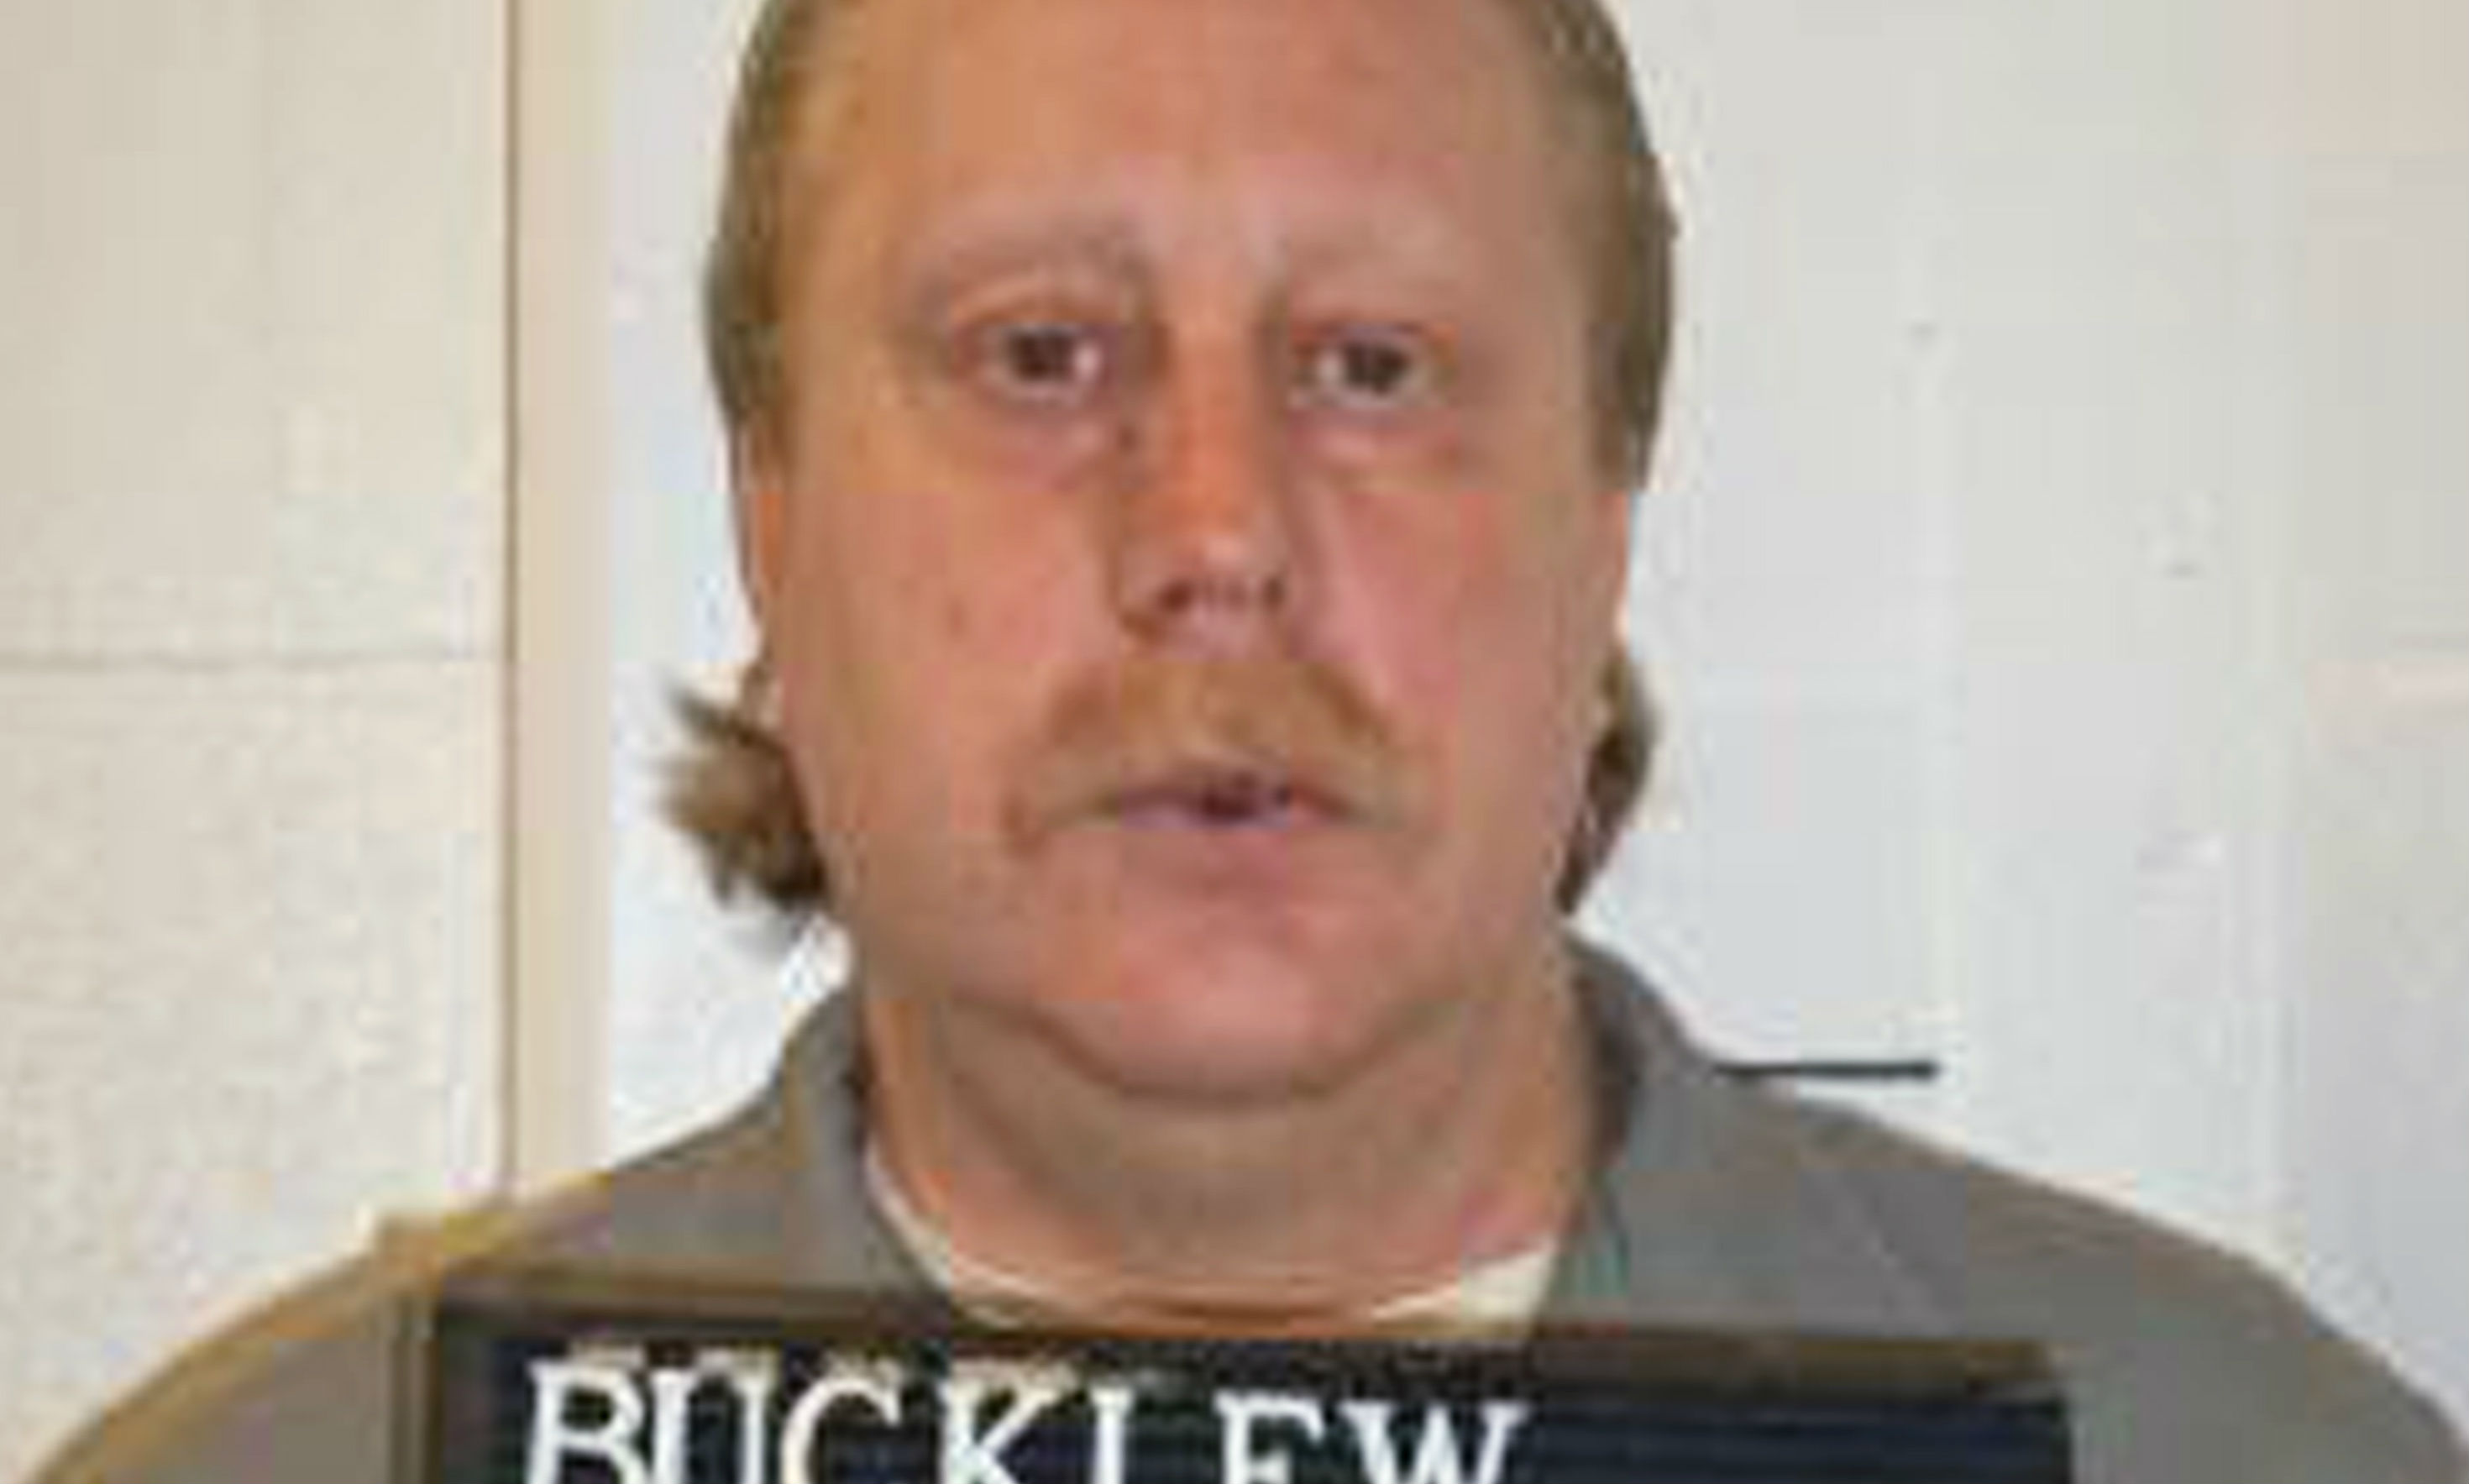 Russell-Bucklew-AP-ImagesMissouri-Department-of-Corrections